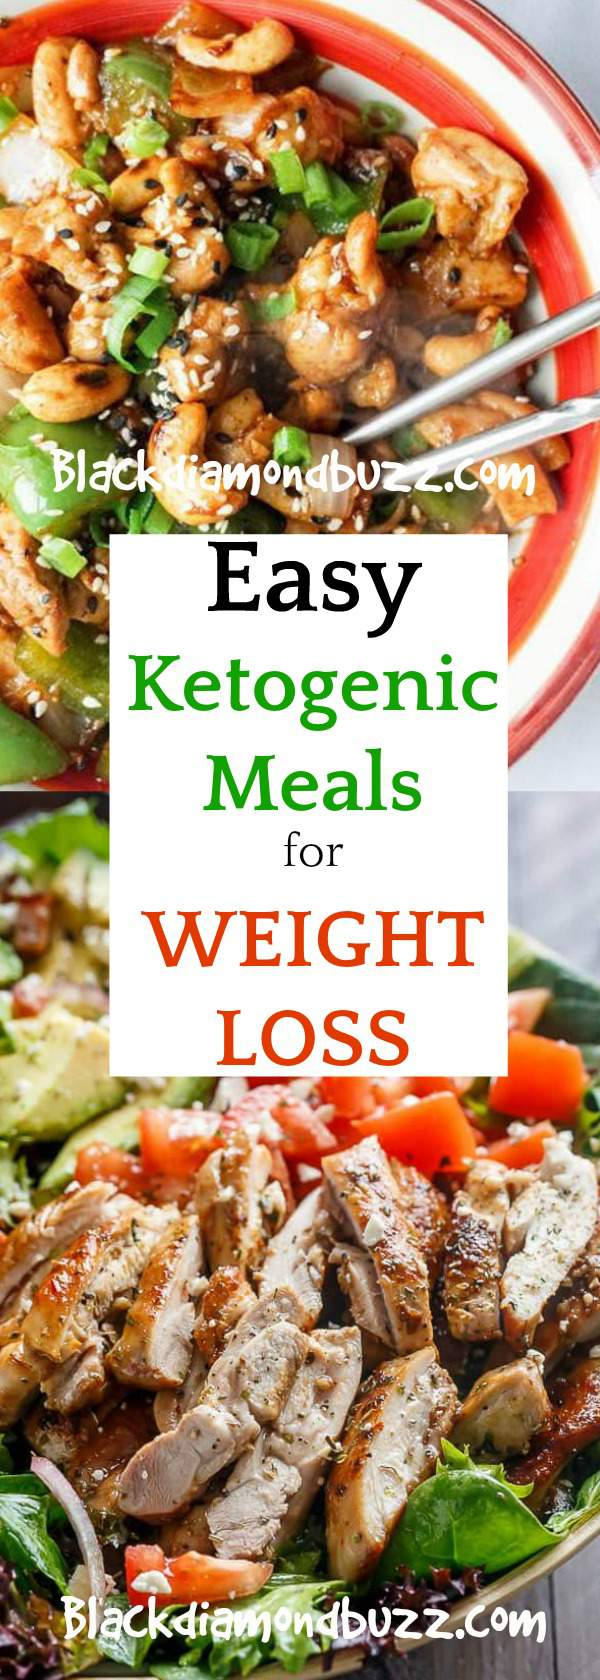 Keto Diet Plan Recipes That Will Make You Lose Weight In 7